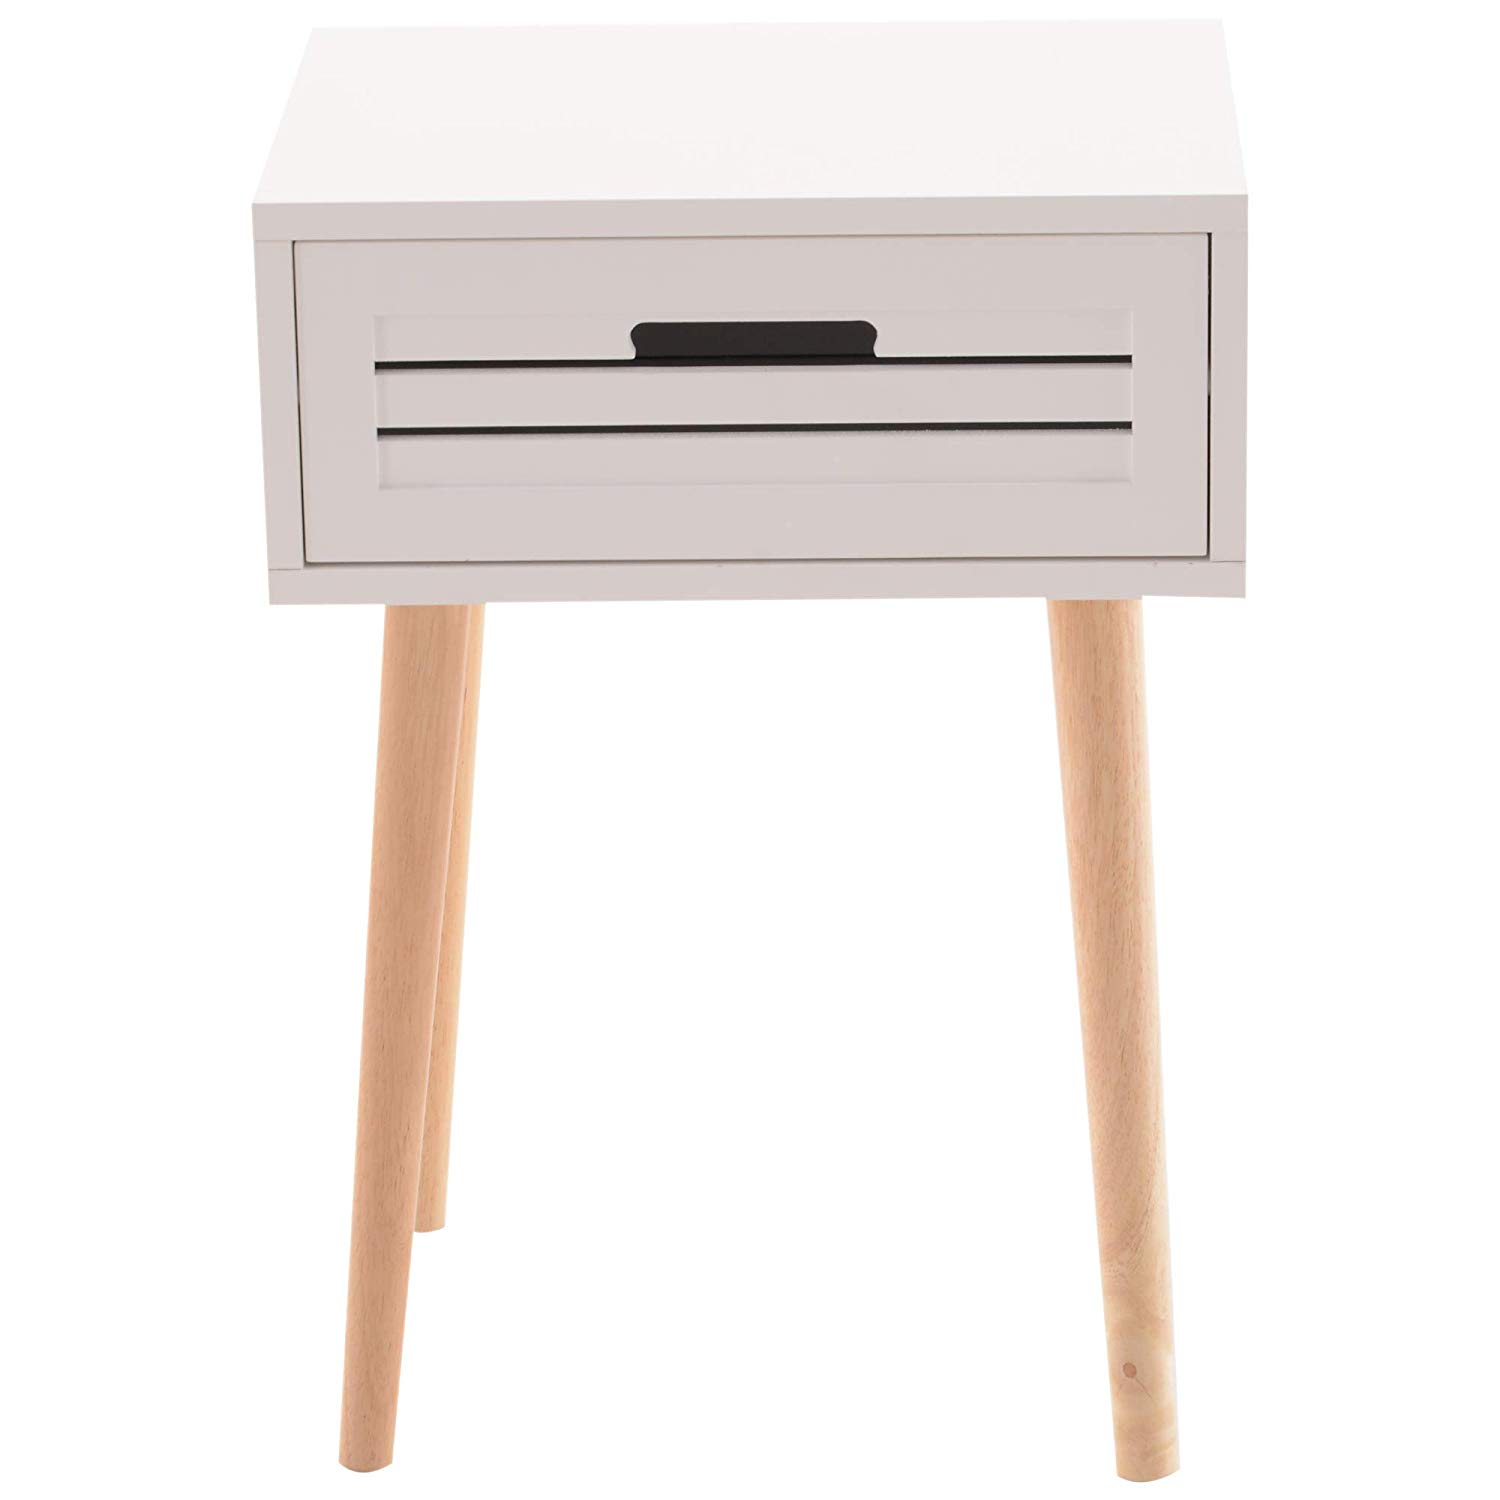 homcom wood mid century modern end table night stand accent with storage drawer white kitchen dining patio coffee ideas round screw legs side console shoe battery bedside lamp